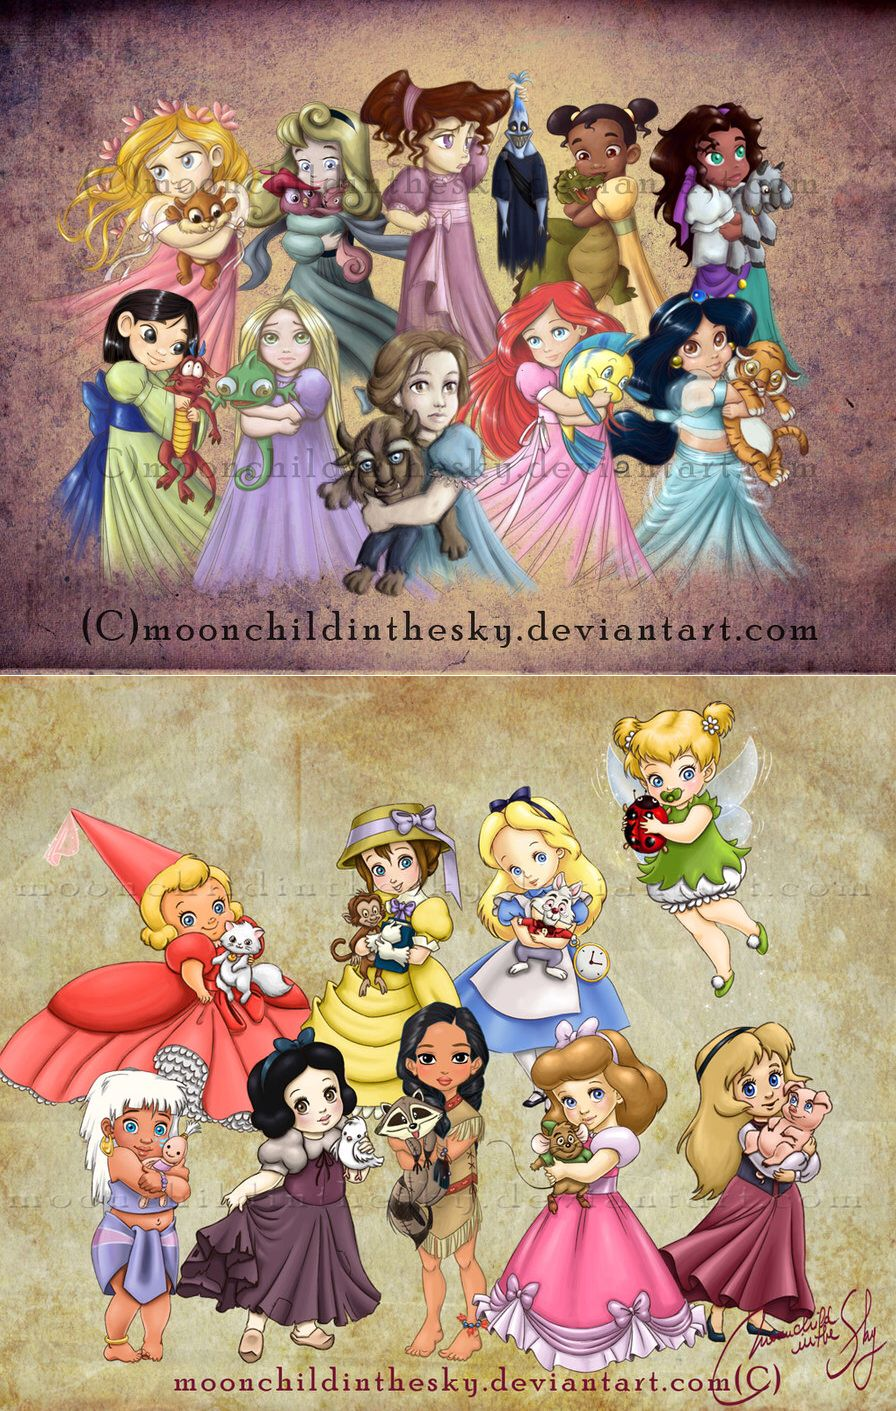 Children Princesses 2011 & 2012 Collections by